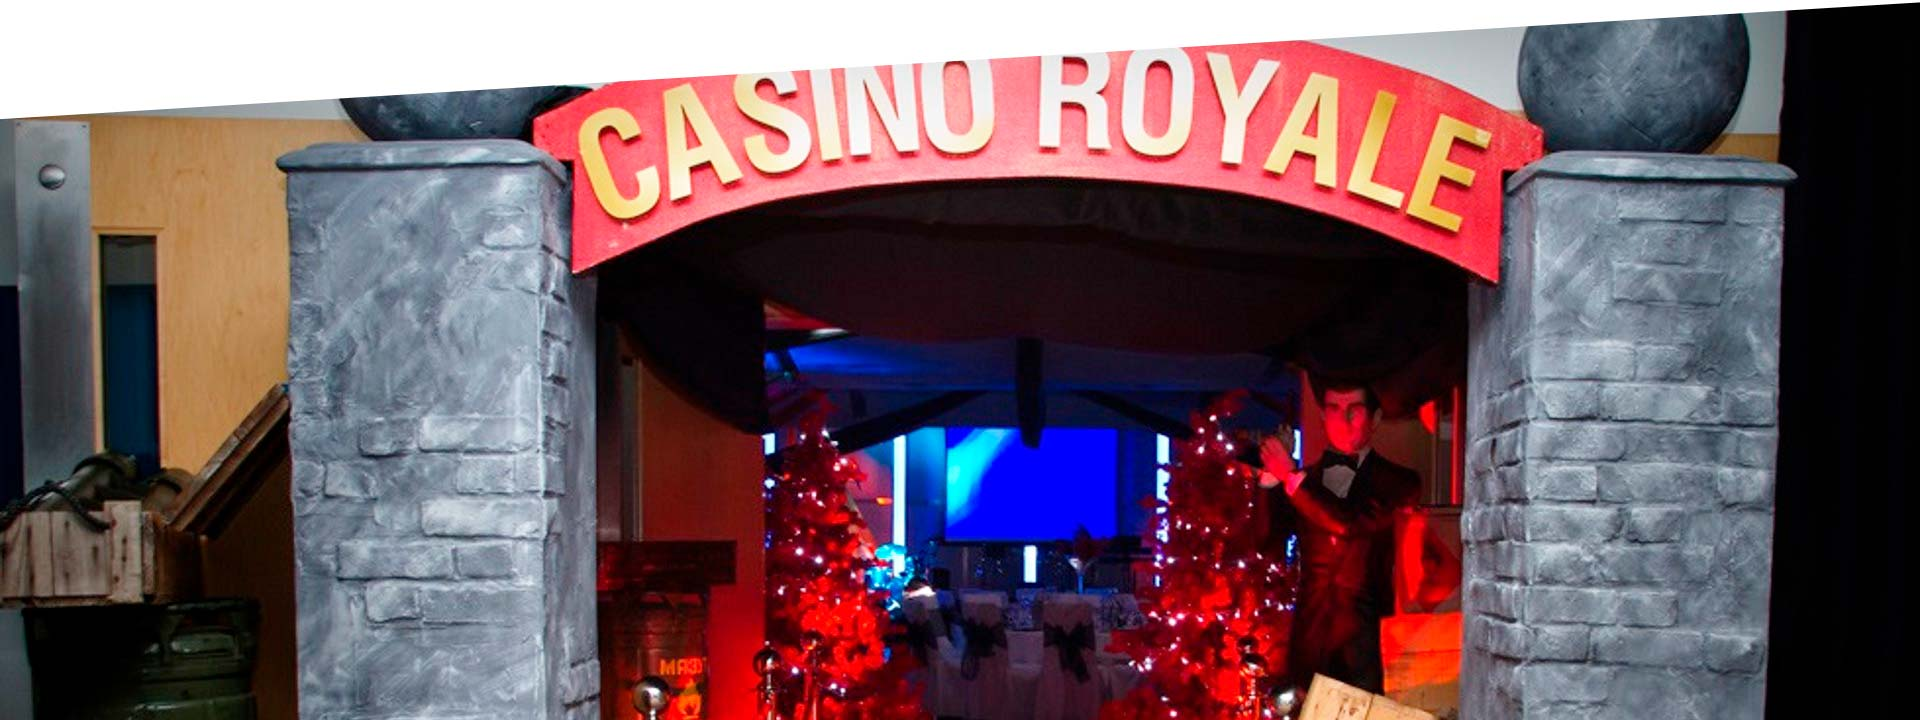 Office Christmas Casino Royale Christmas Party Theme